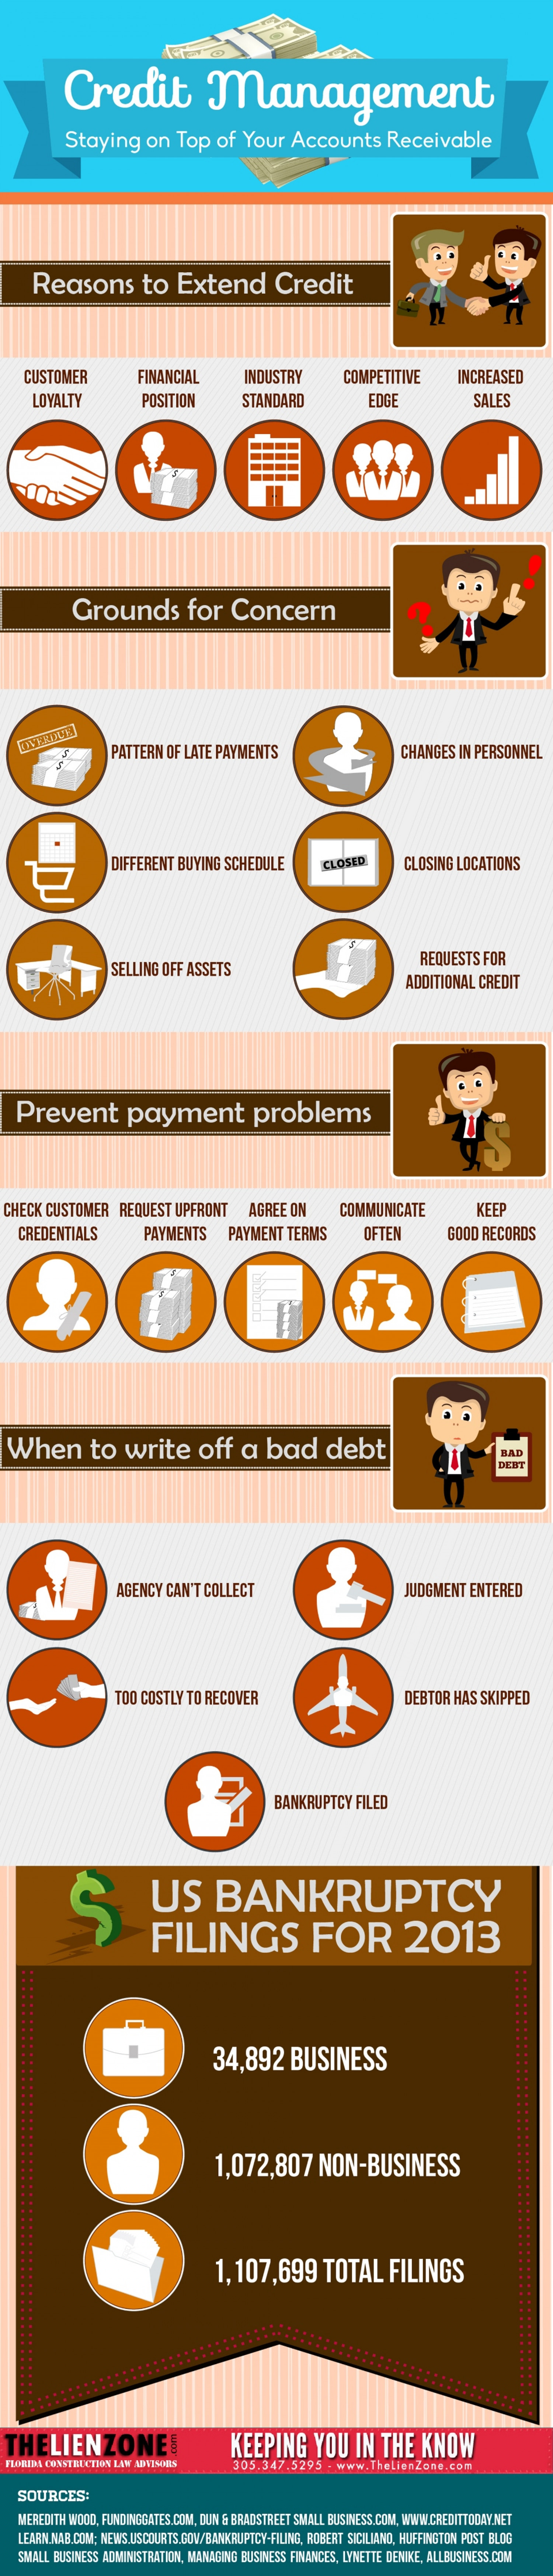 Credit Management: Staying on Top of Your Accounts Receivable Infographic